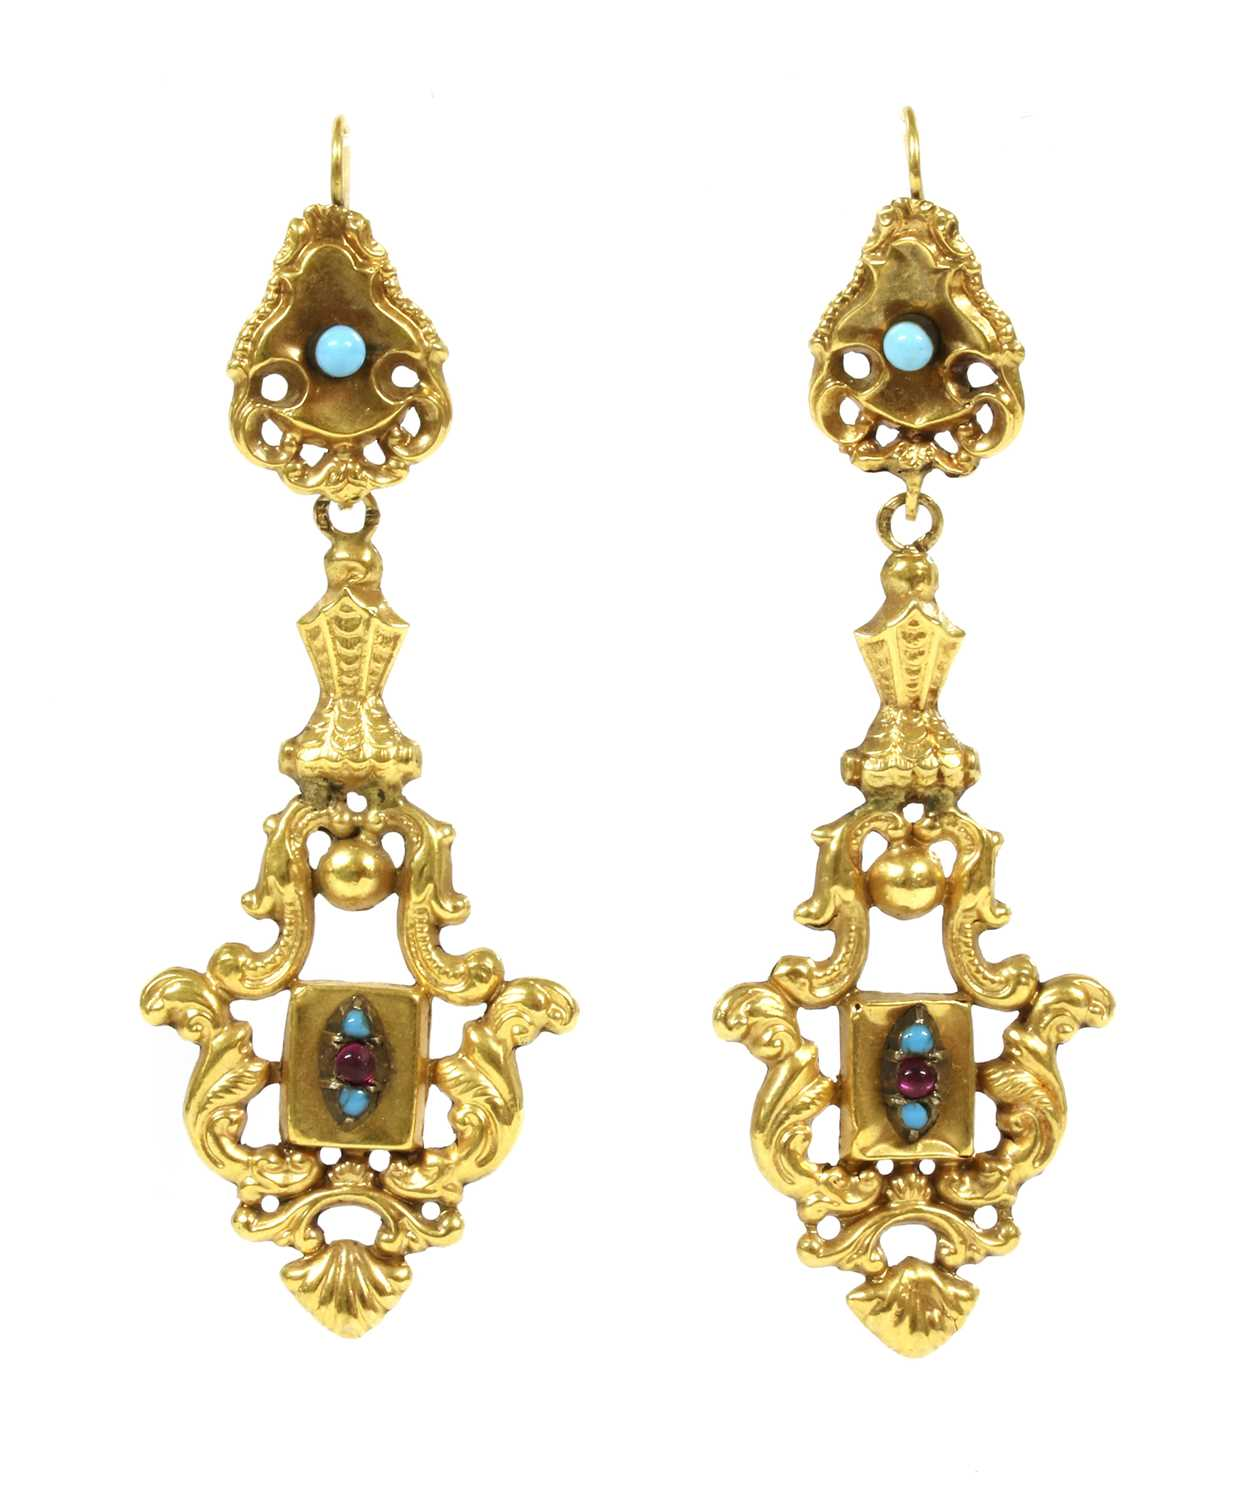 Lot 23-A pair of early Victorian gold repoussé rococo-style drop earrings